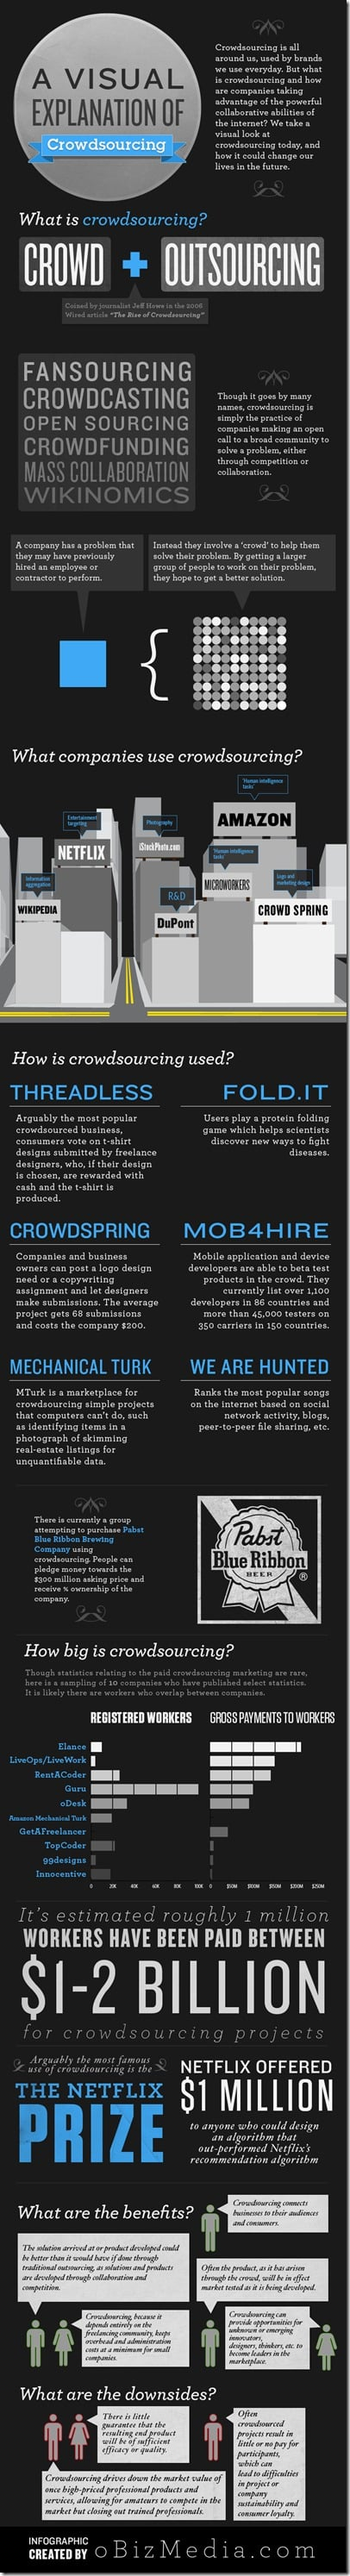 Infographic: What Is Crowdsourcing?